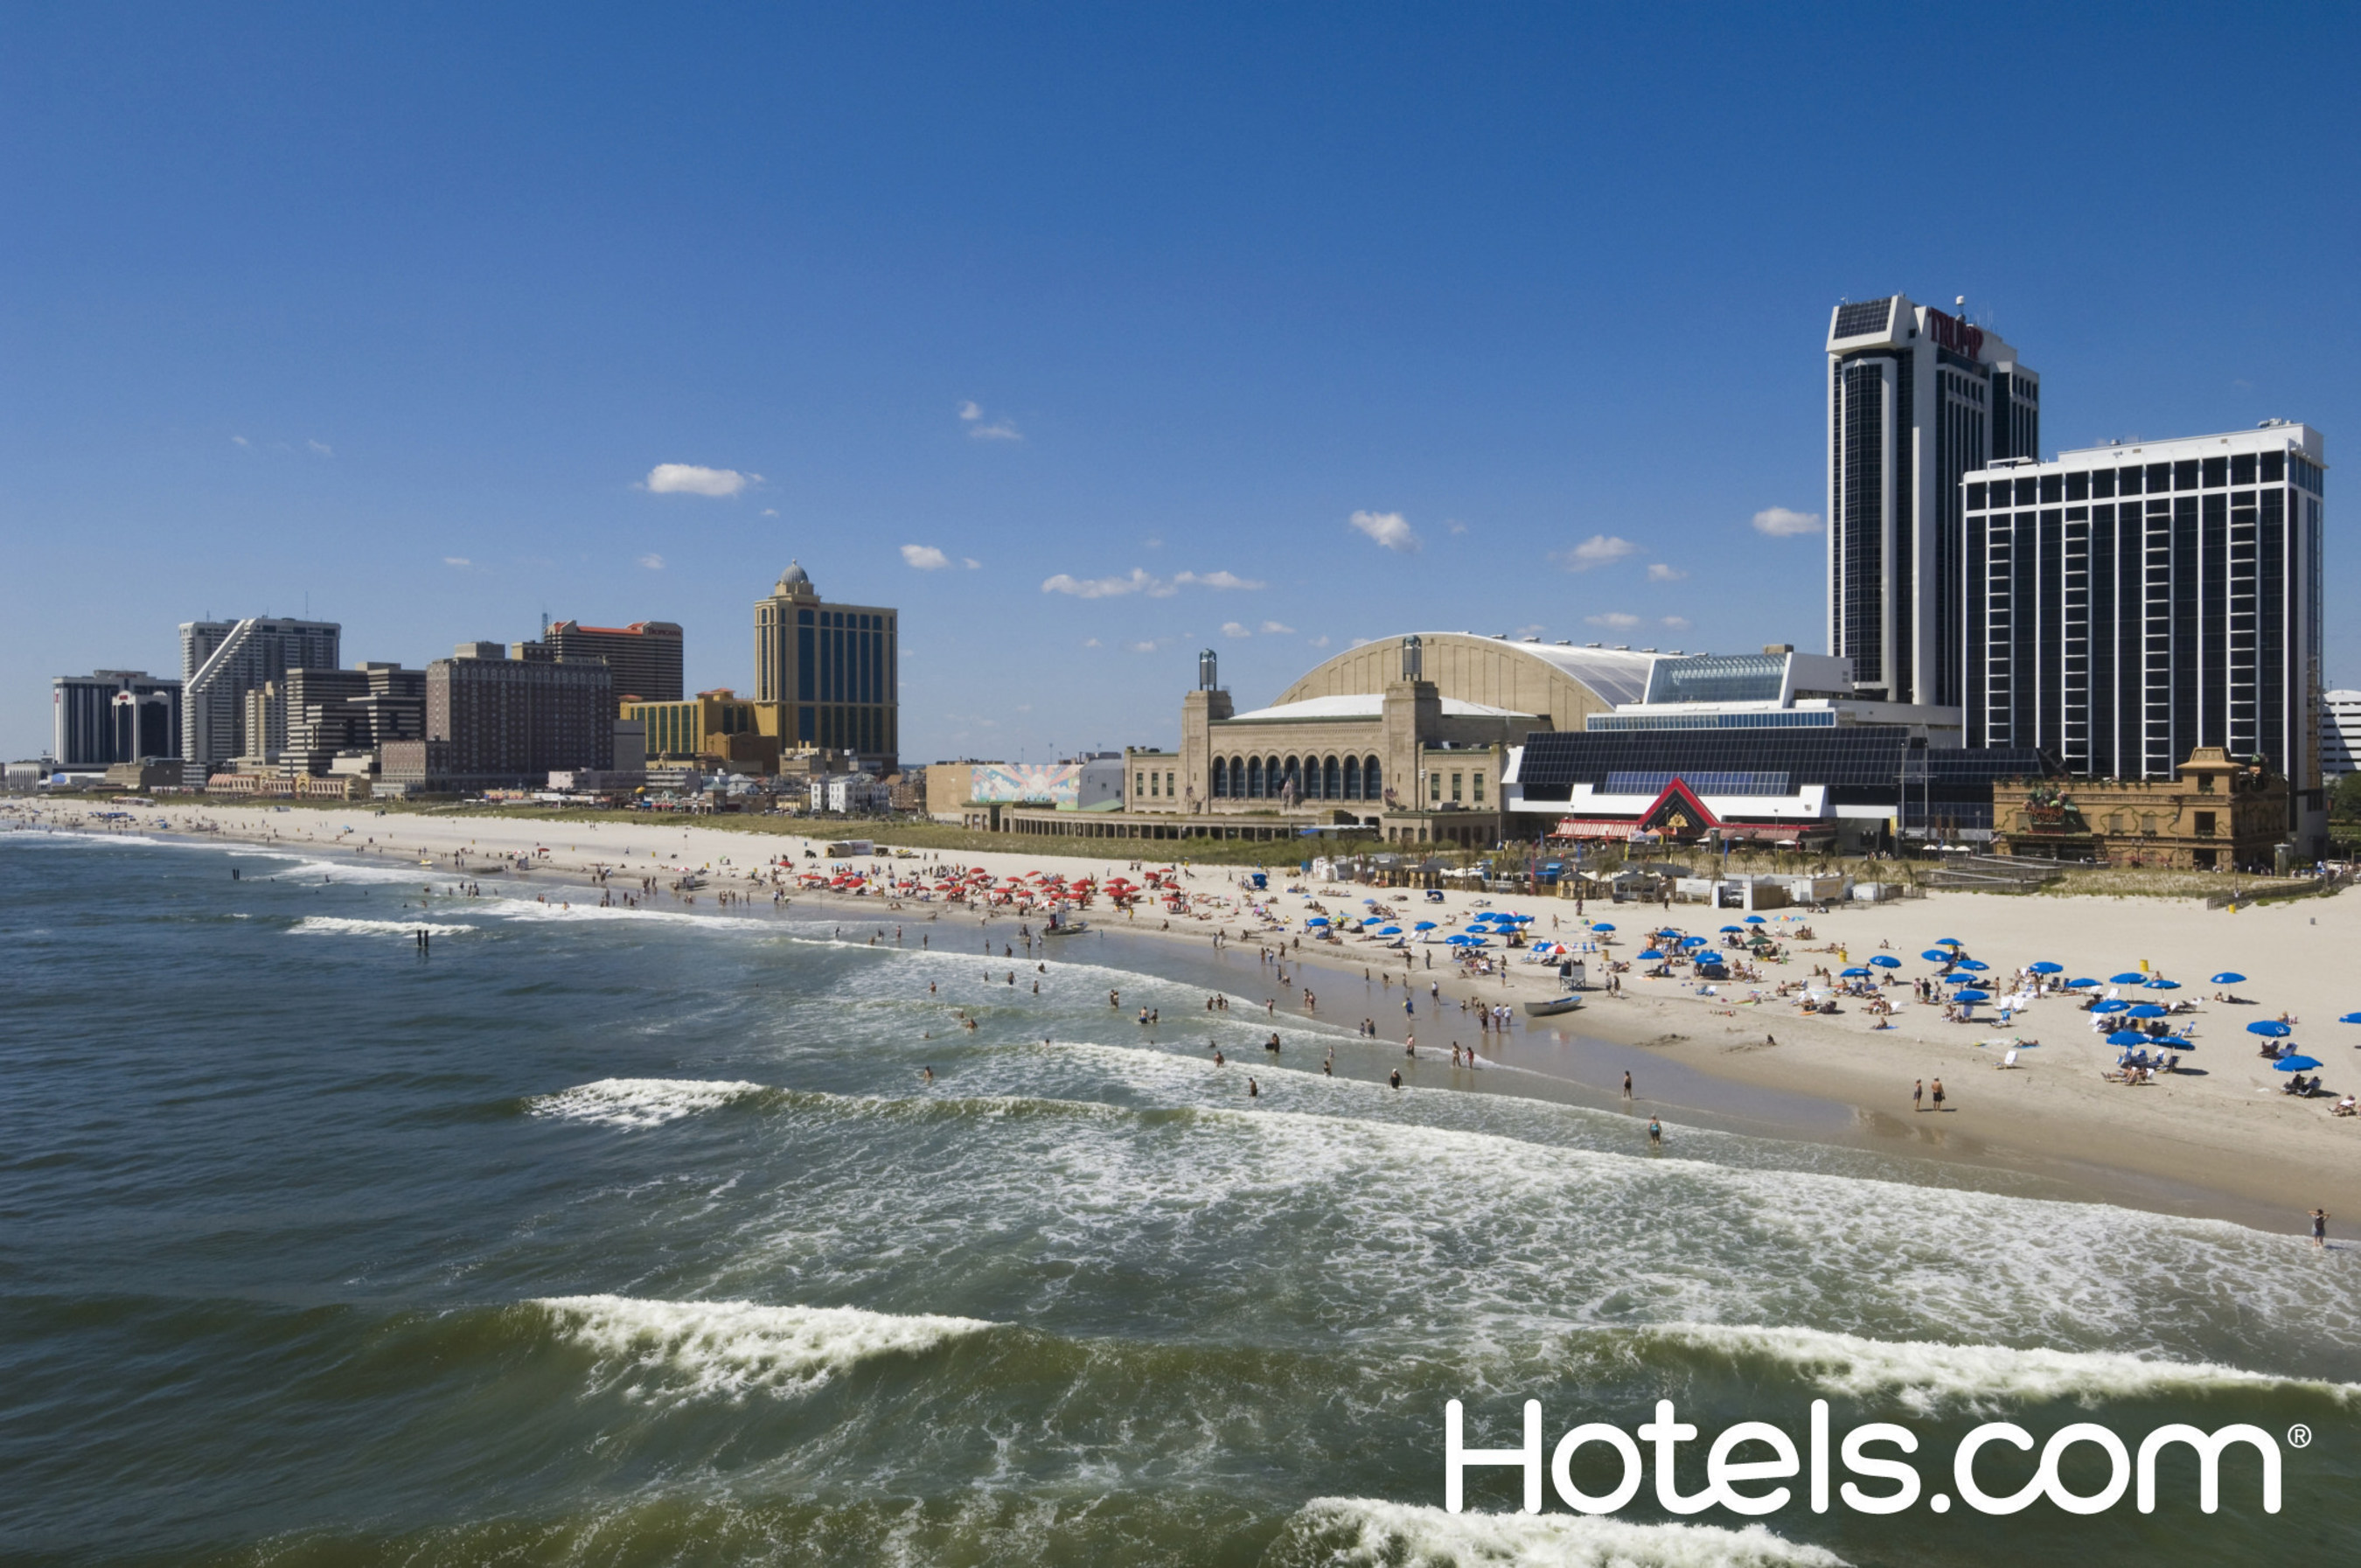 Labor Day travel is expected to reach its highest levels in six years and more Americans are searching for last-minute deals as the holiday weekend approaches, according to Hotels.com? (PRNewsFoto/Hotels.com)